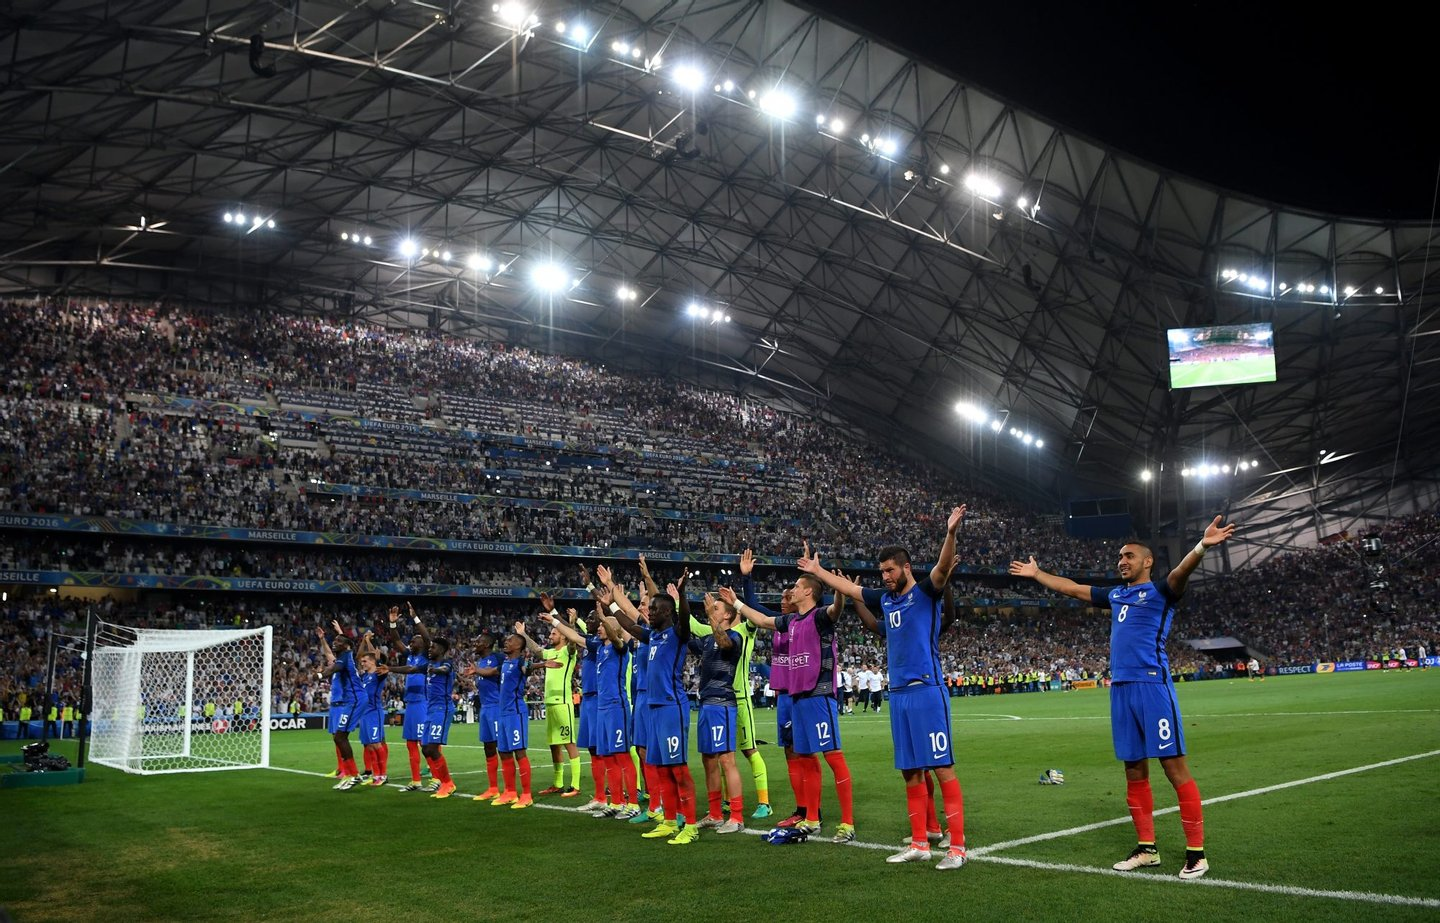 MARSEILLE, FRANCE - JULY 07:  France players celebrate their team's 2-0 win in the UEFA EURO semi final match between Germany and France at Stade Velodrome on July 7, 2016 in Marseille, France.  (Photo by Matthias Hangst/Getty Images)